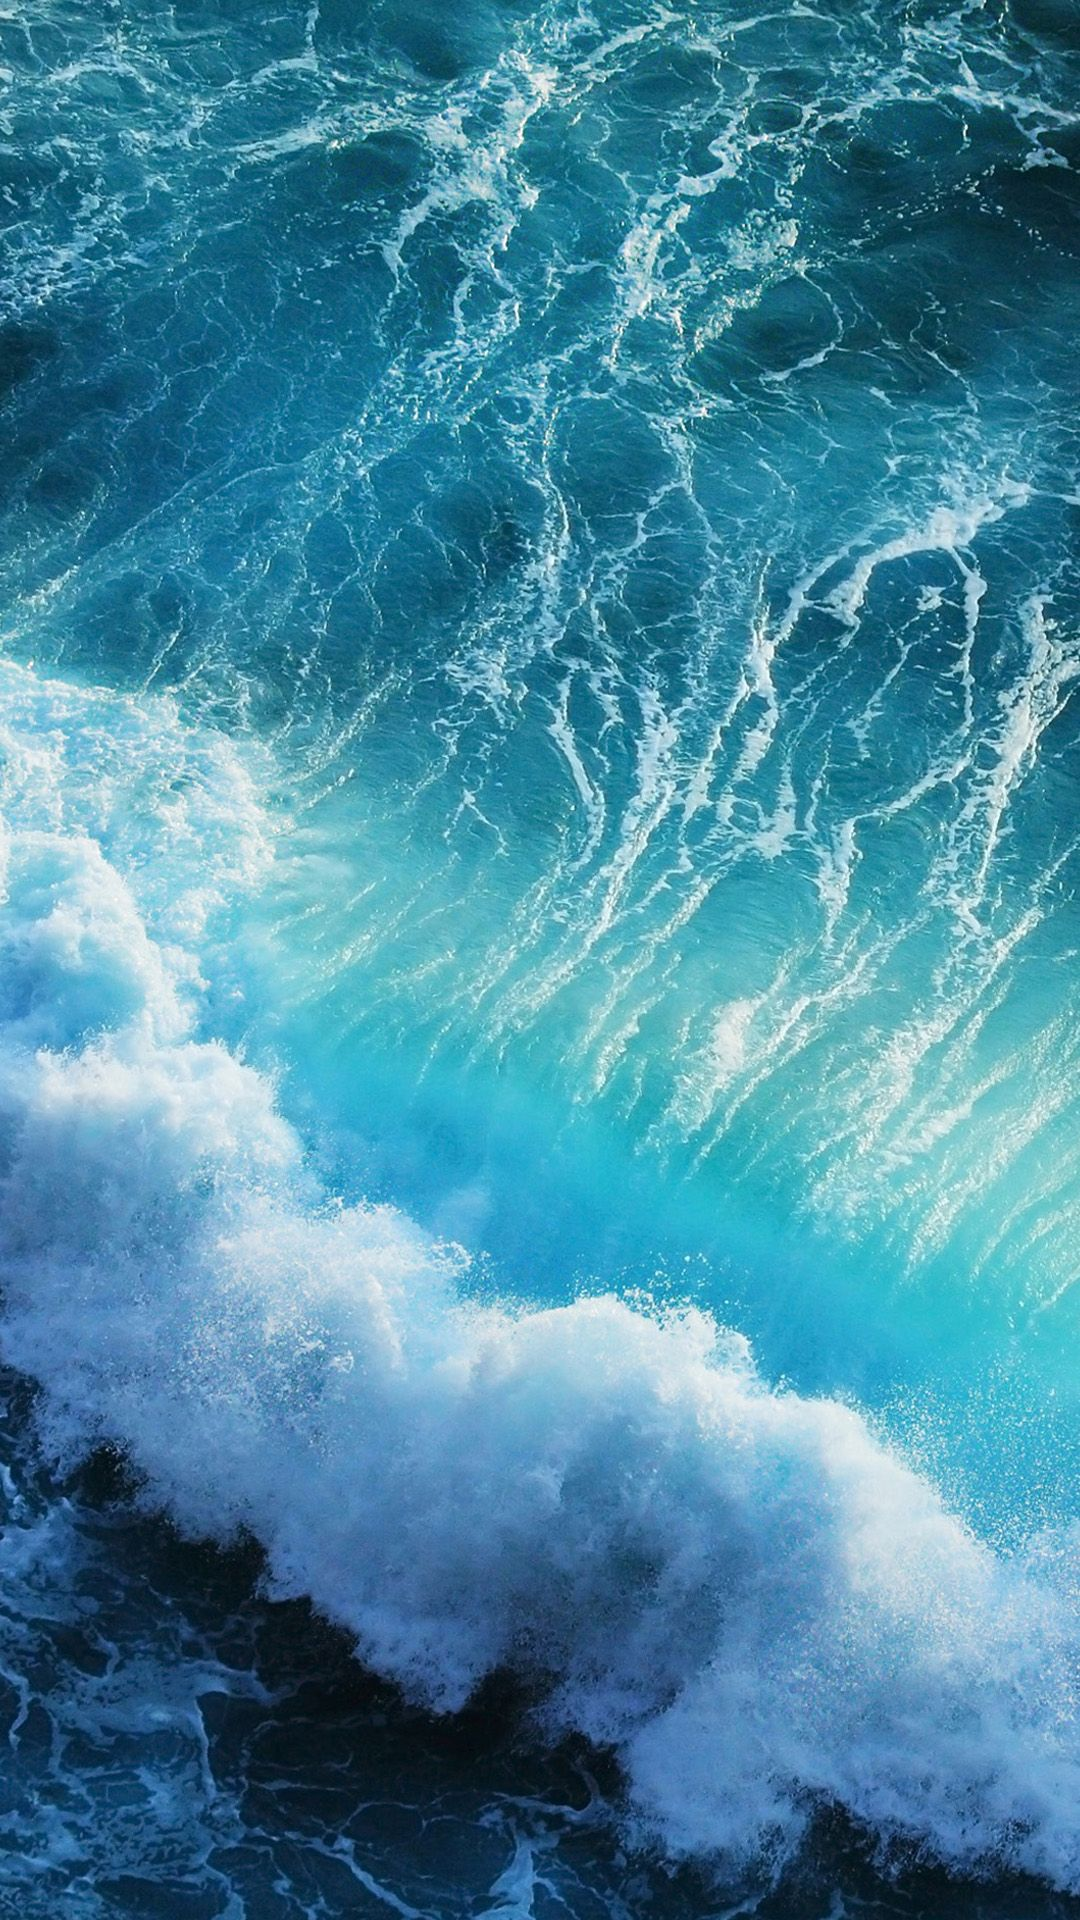 Blue sea water wallpapers for iphone 6 plus Iphone 6